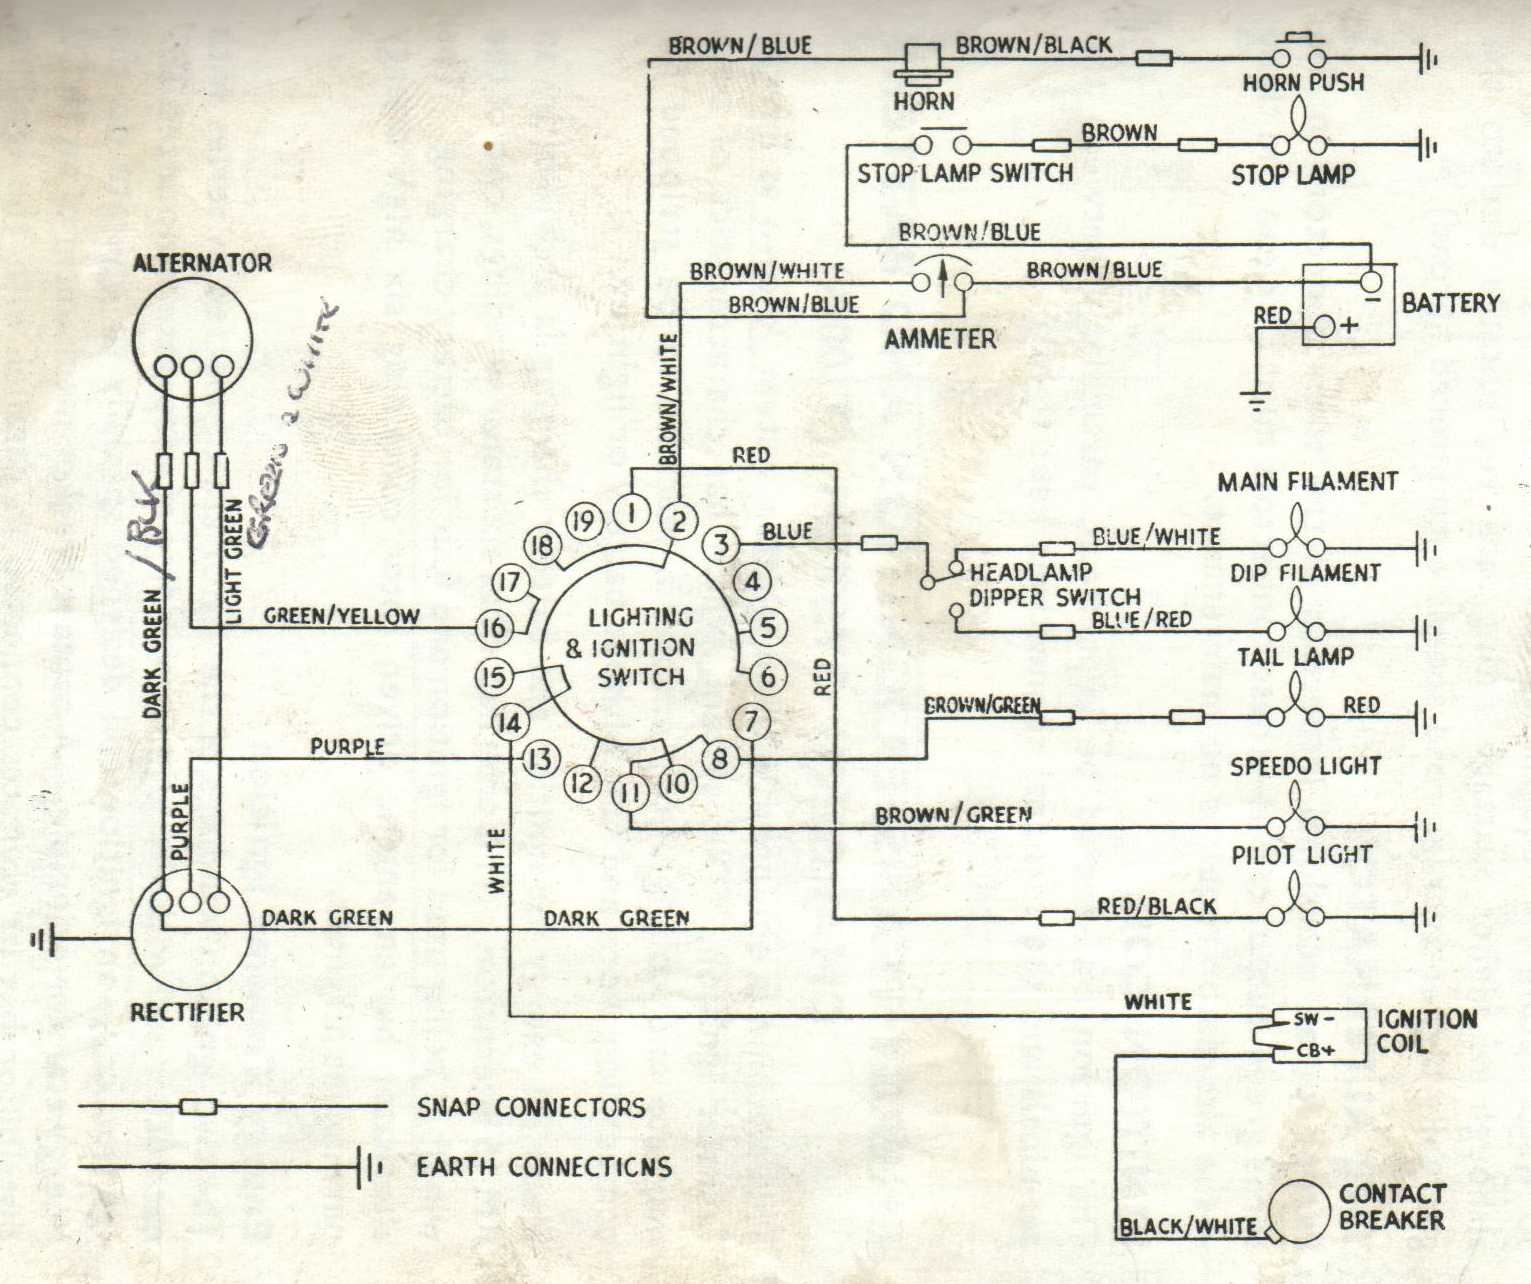 untitled document rh classicglory co uk Wiring Diagram Symbols Light Switch Wiring Diagram